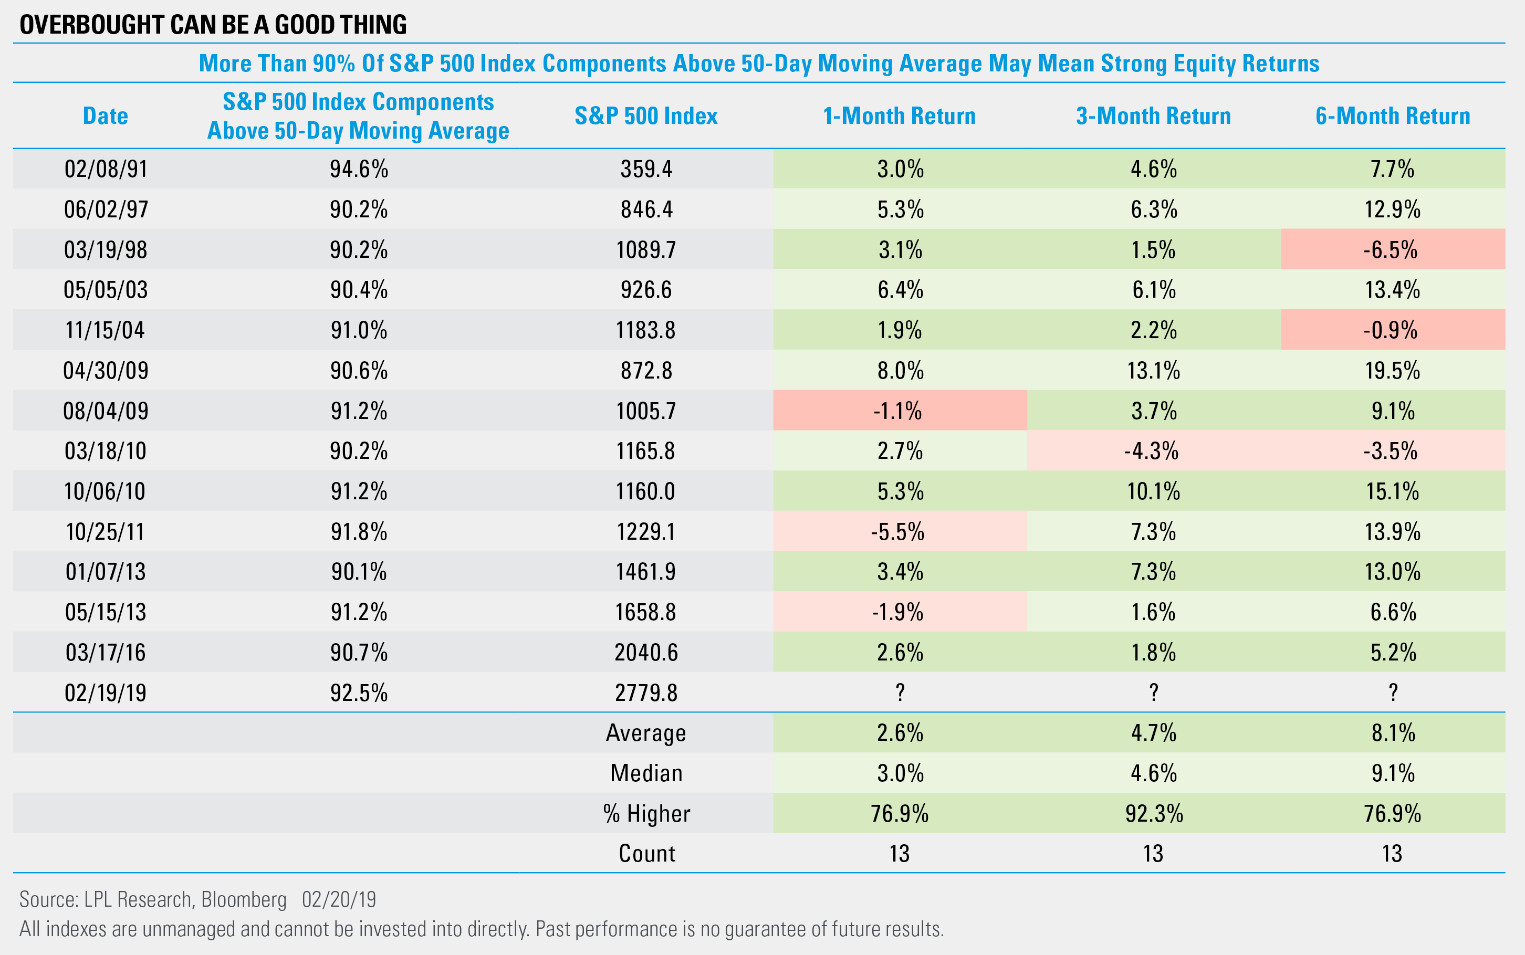 When Is Overbought Bullish? | LPL Financial Research